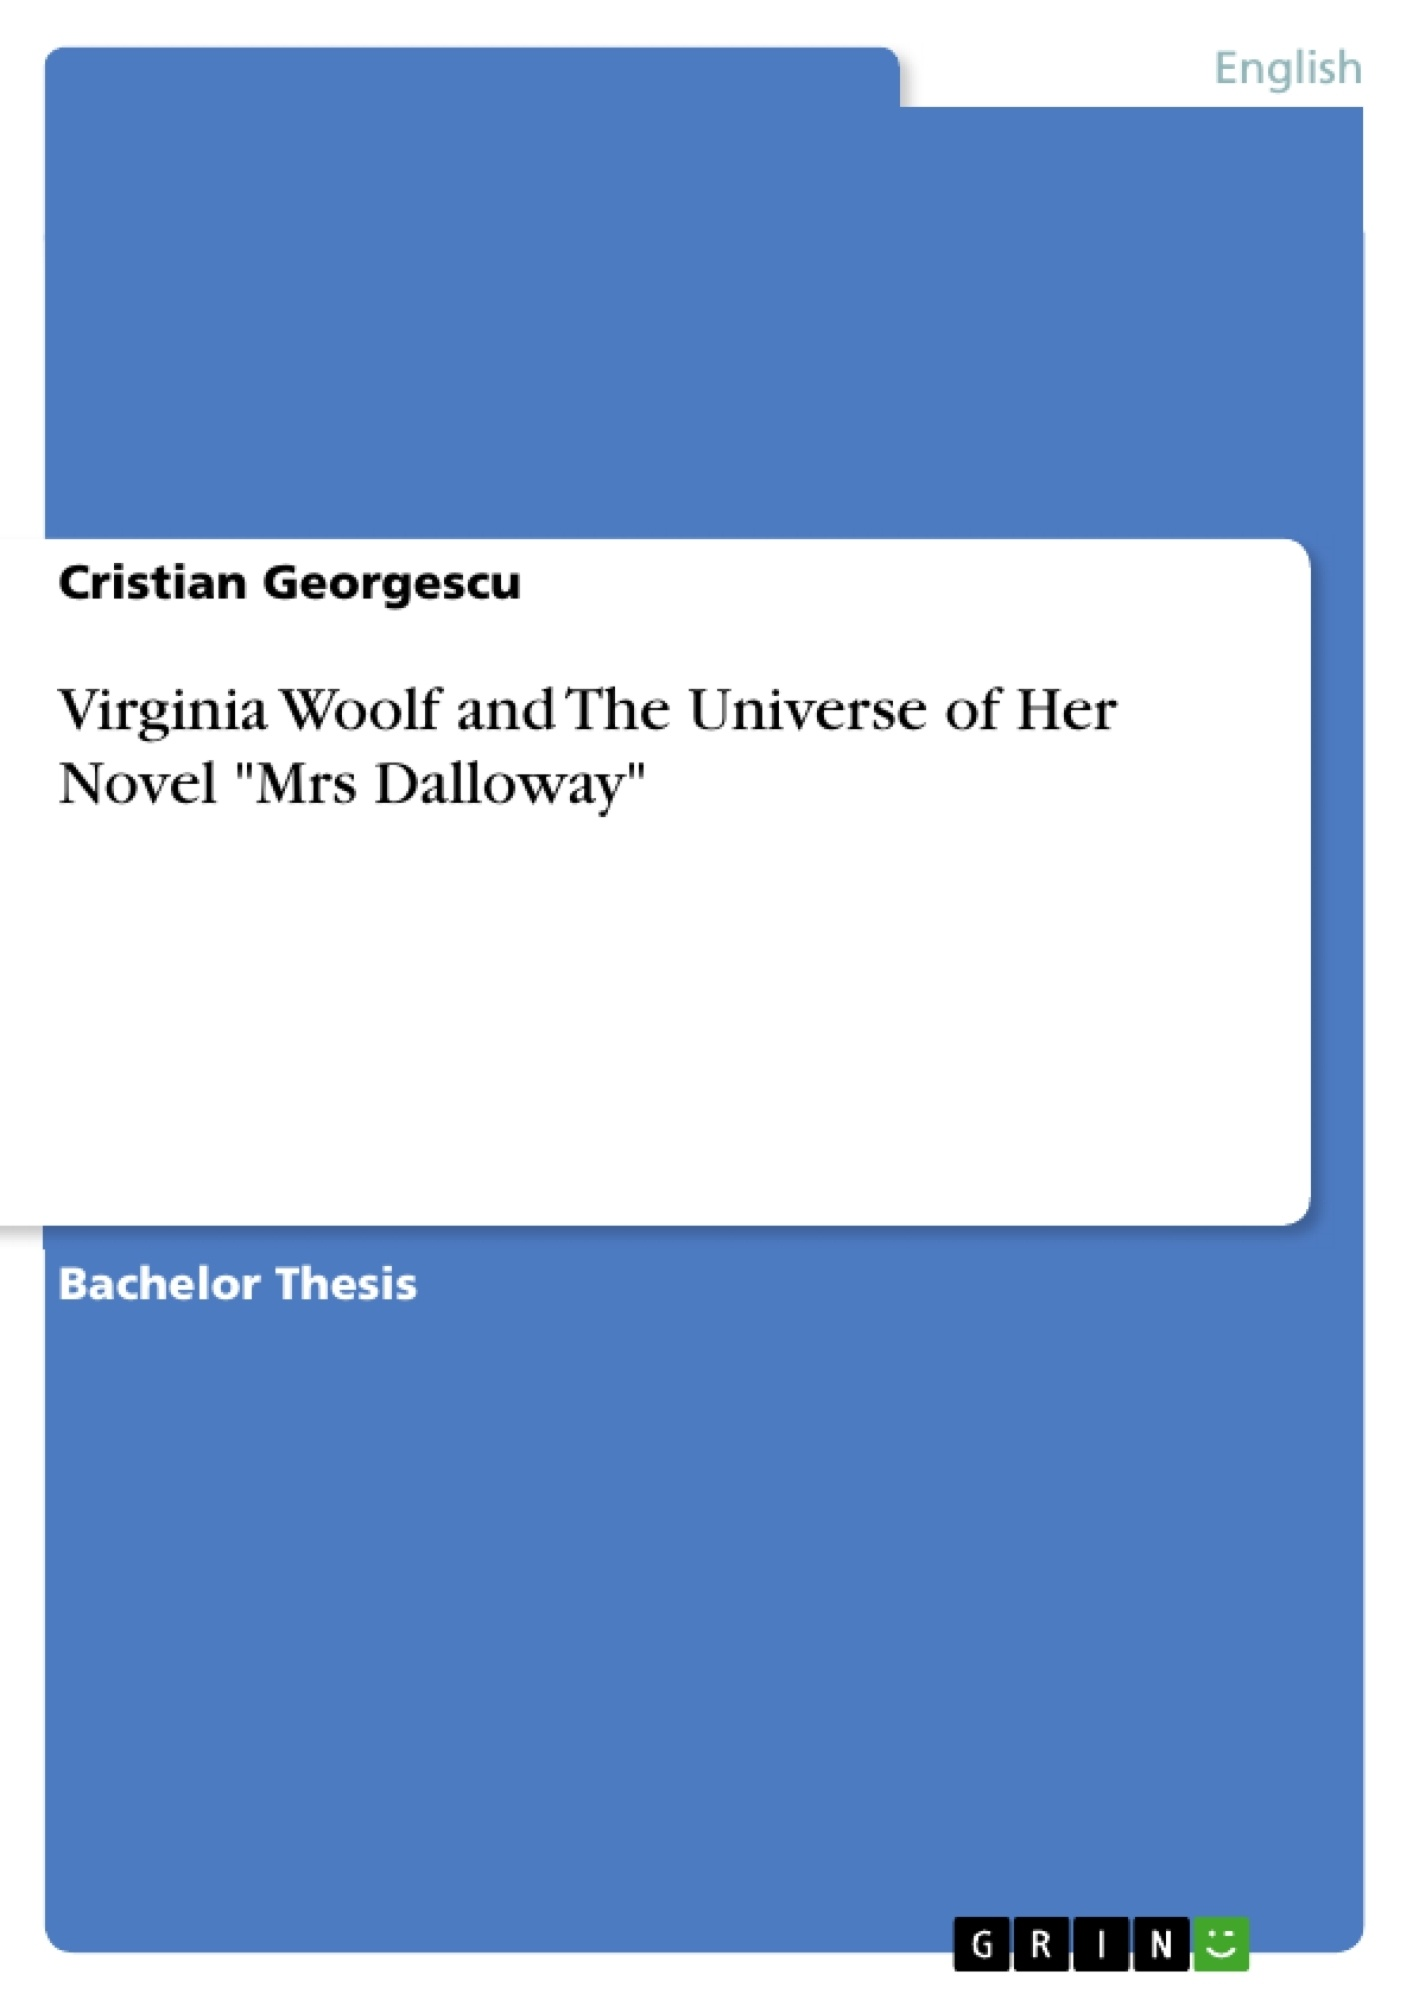 """Title: Virginia Woolf and The Universe of Her Novel """"Mrs Dalloway"""""""